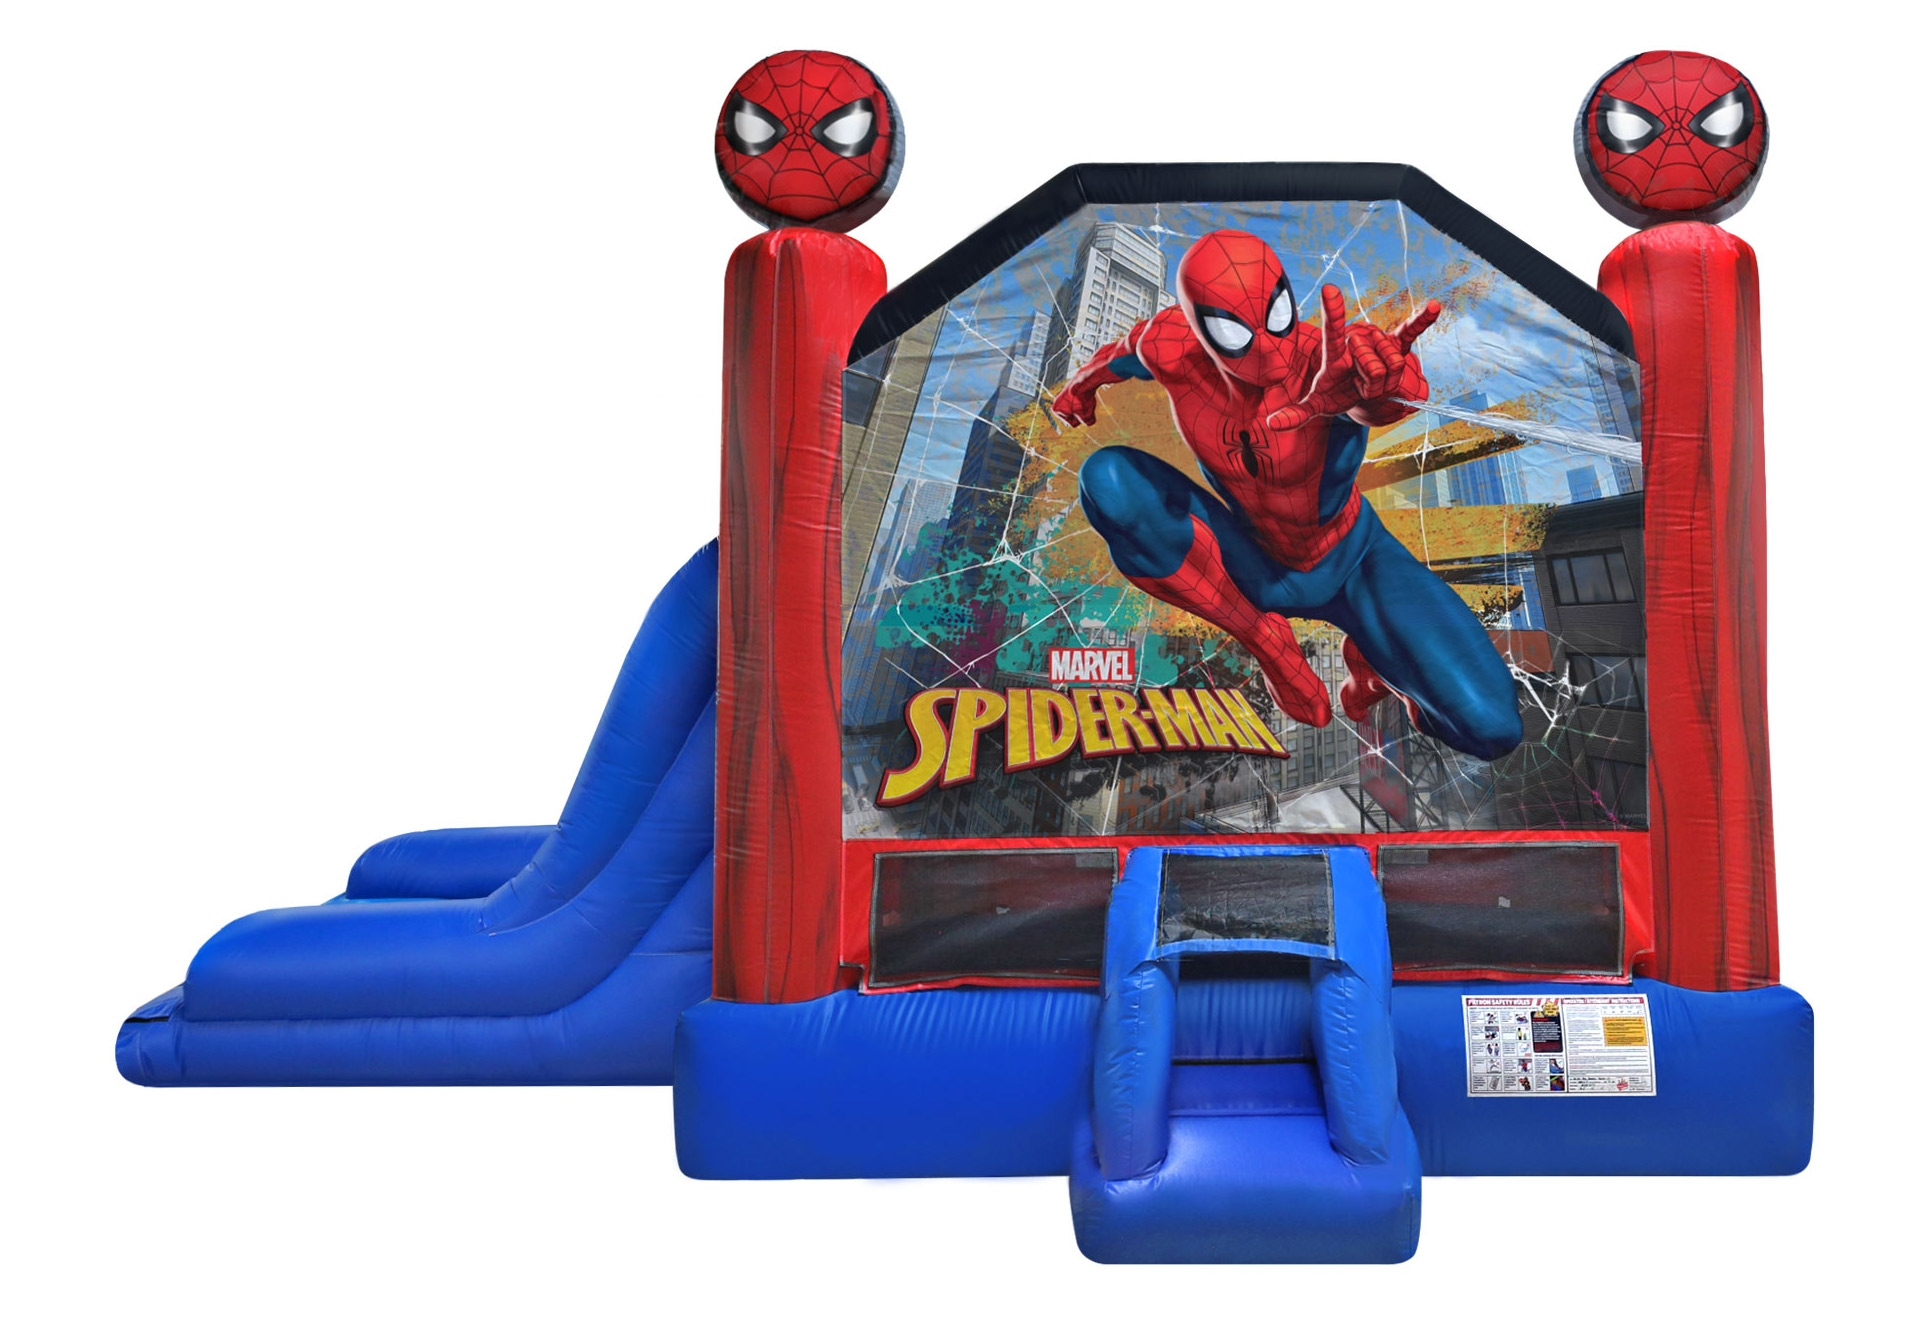 Spiderman Jumphouse